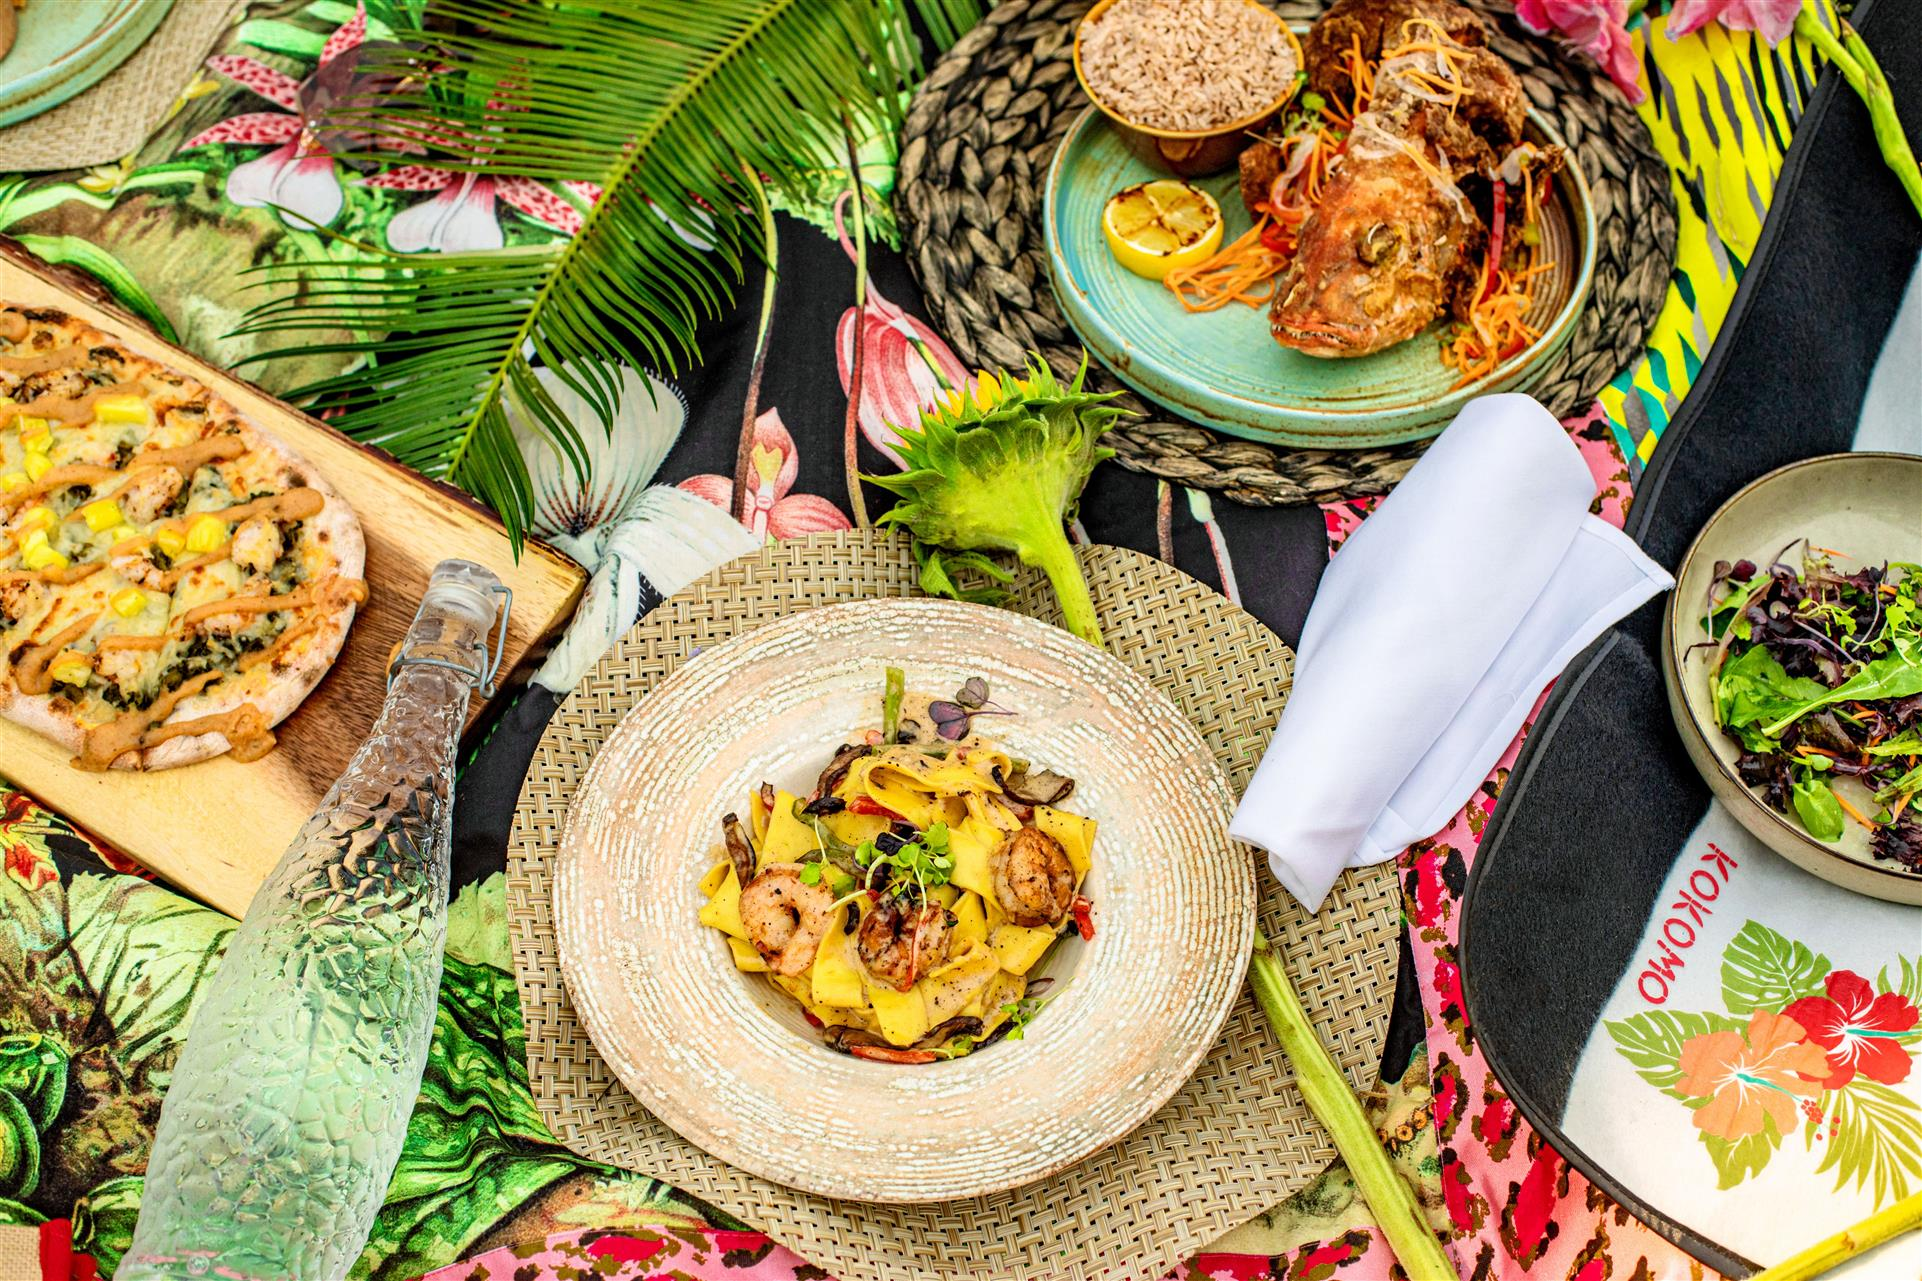 Plates of flatbread, shrimp pasta and whole fried fish with rice on dinner table with floral design table cloth and glass water bottle.